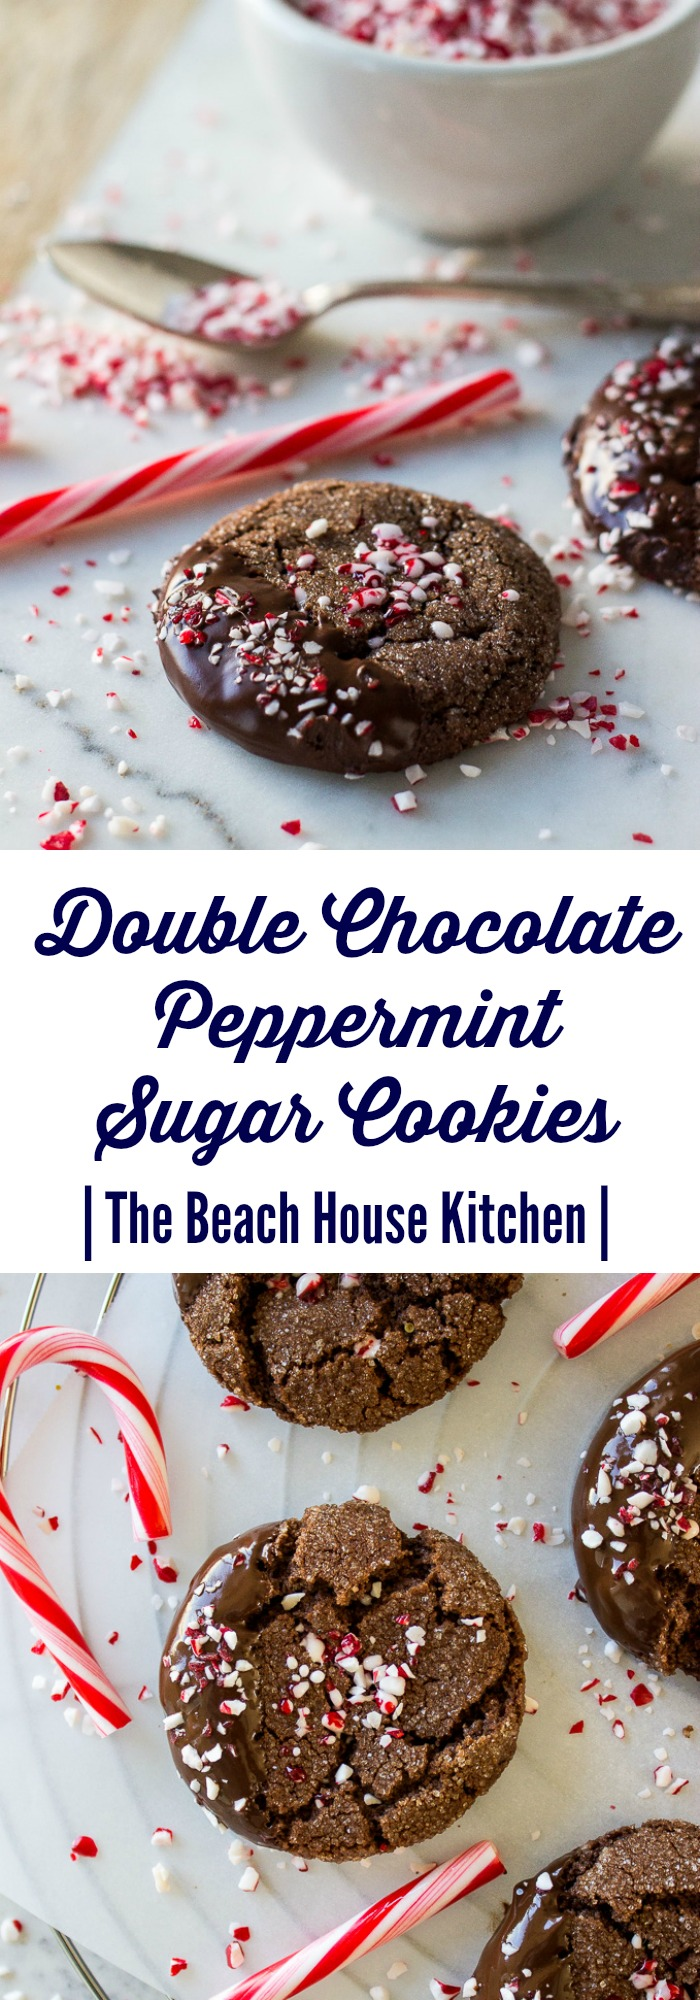 Double Chocolate Peppermint Sugar Cookies